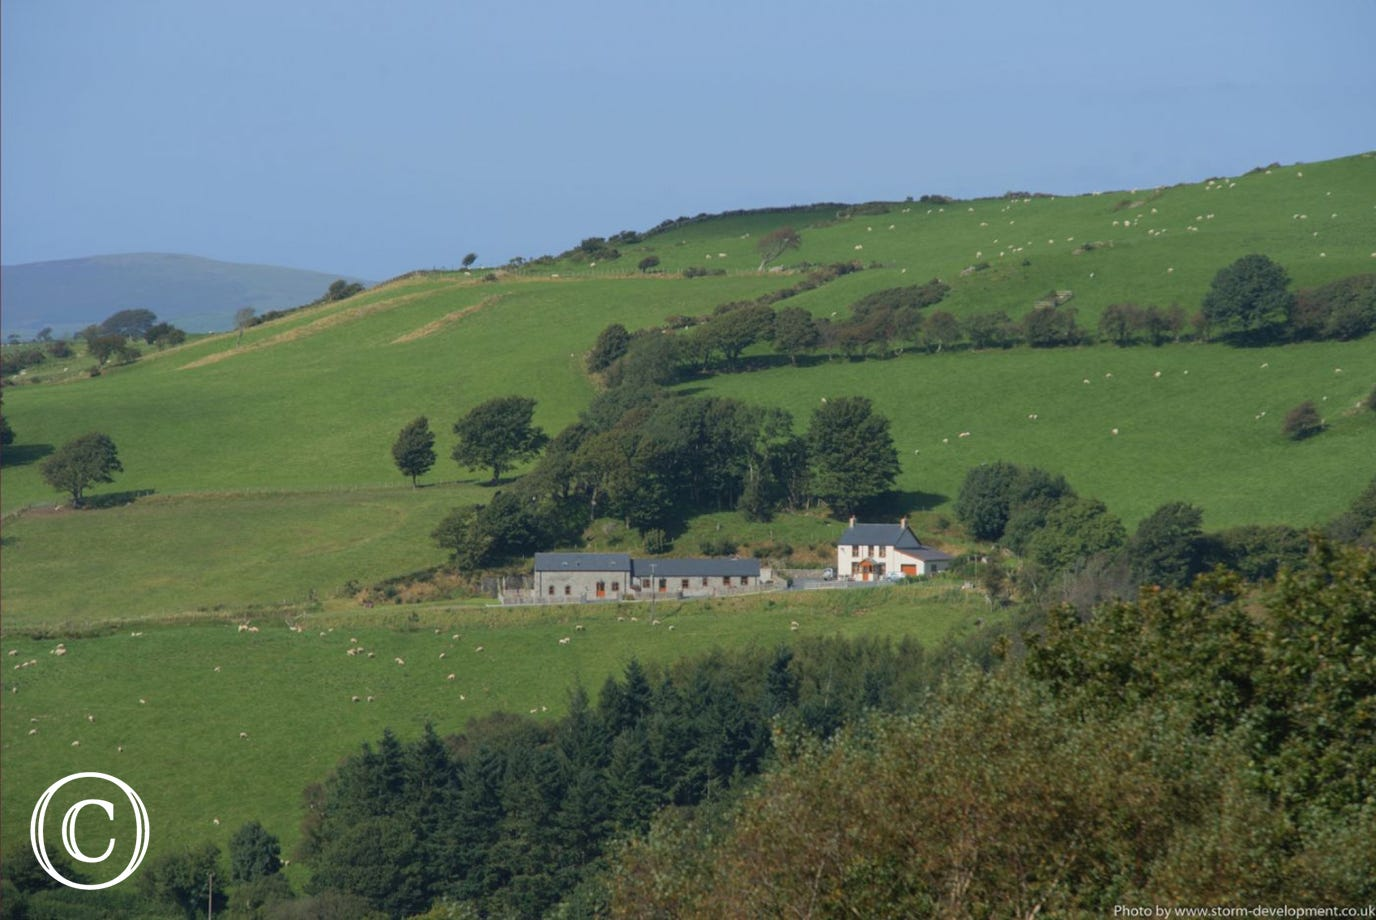 One of two 5 star cottages in a wonderful countryside setting near the coast. Photo by Storm Development